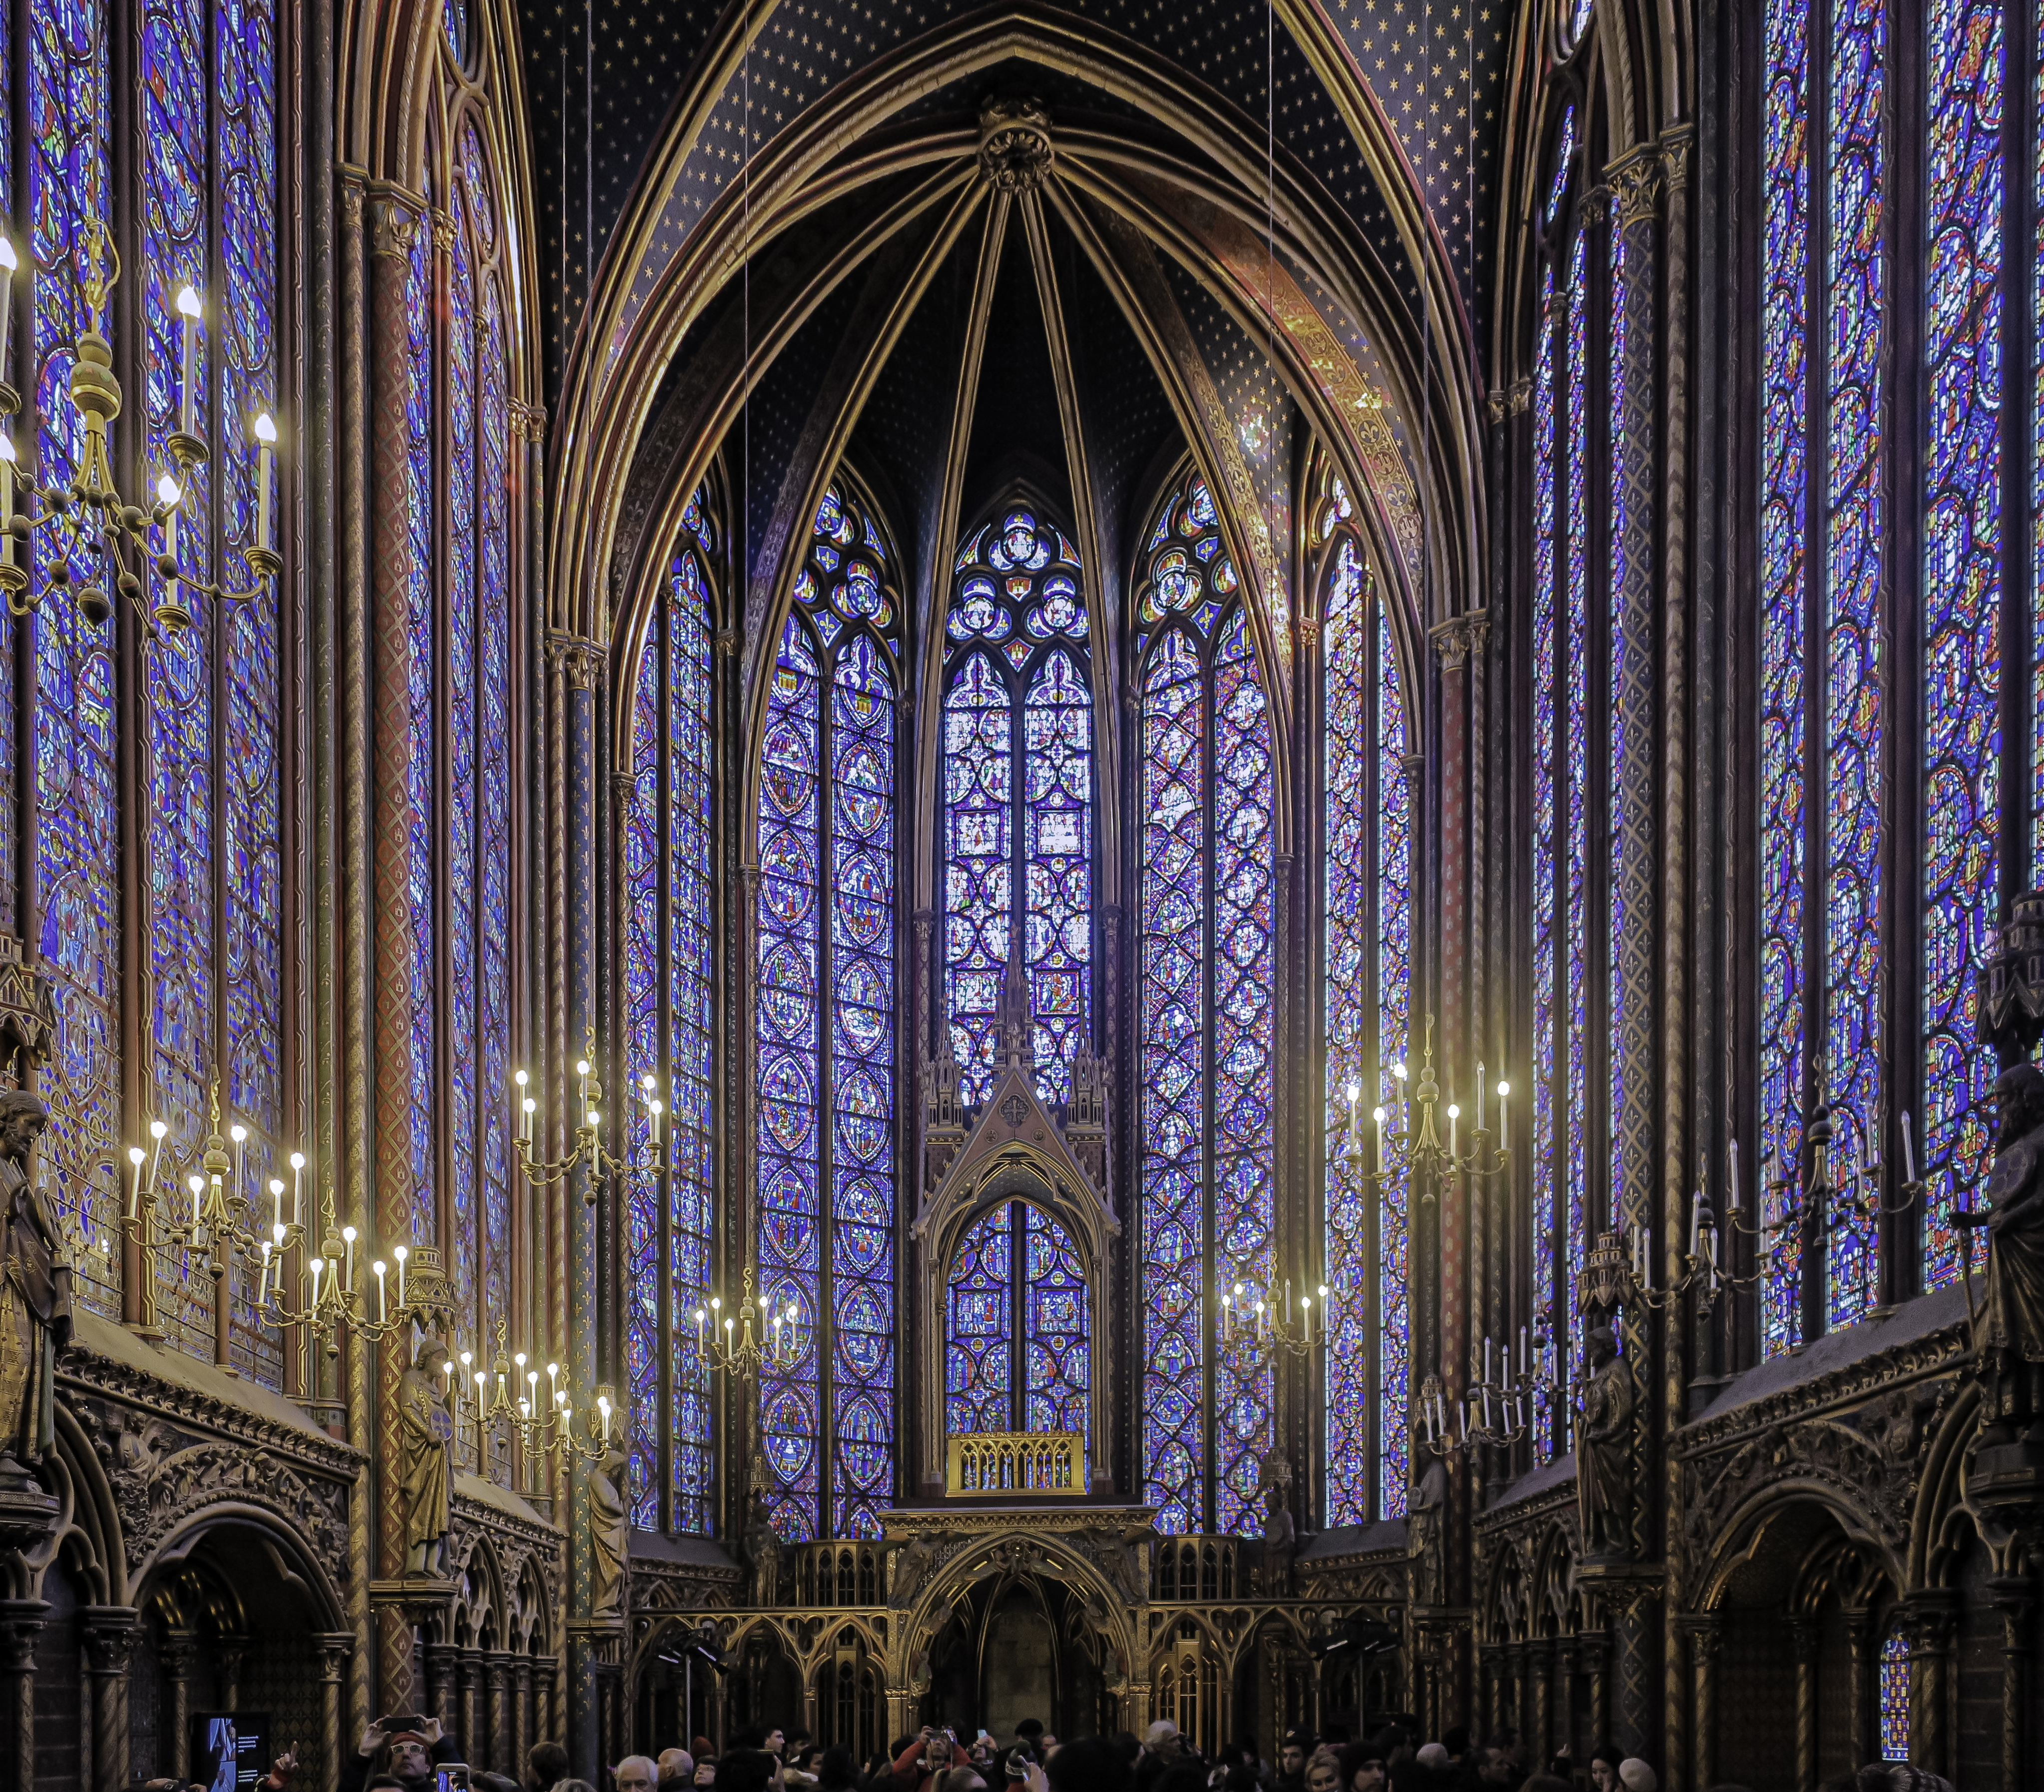 Sainte-Chapelle interior stained glass